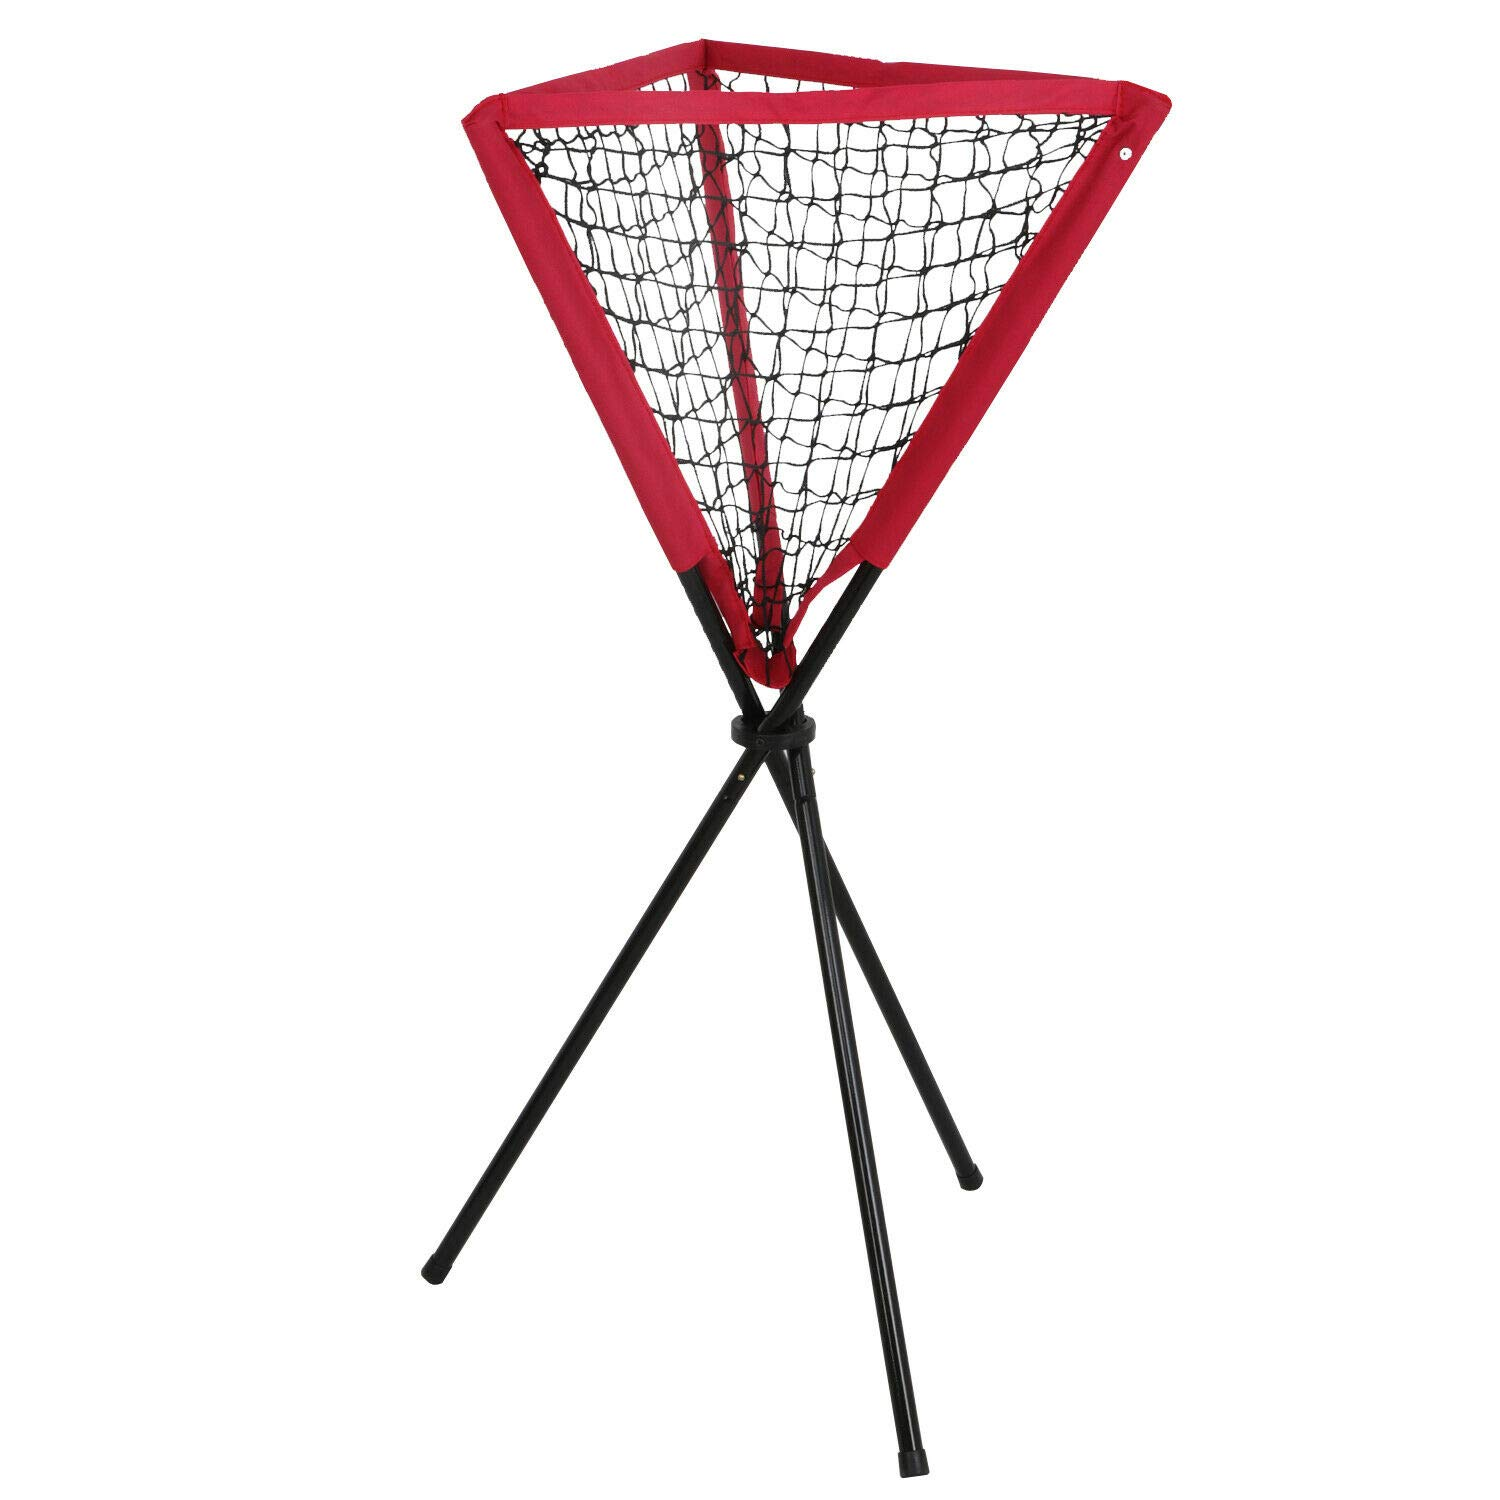 Red and Black Portable Ball Caddy Tripod Stand Baseball Softball Hitting Trainning Aids W/Bag by Blossom Store